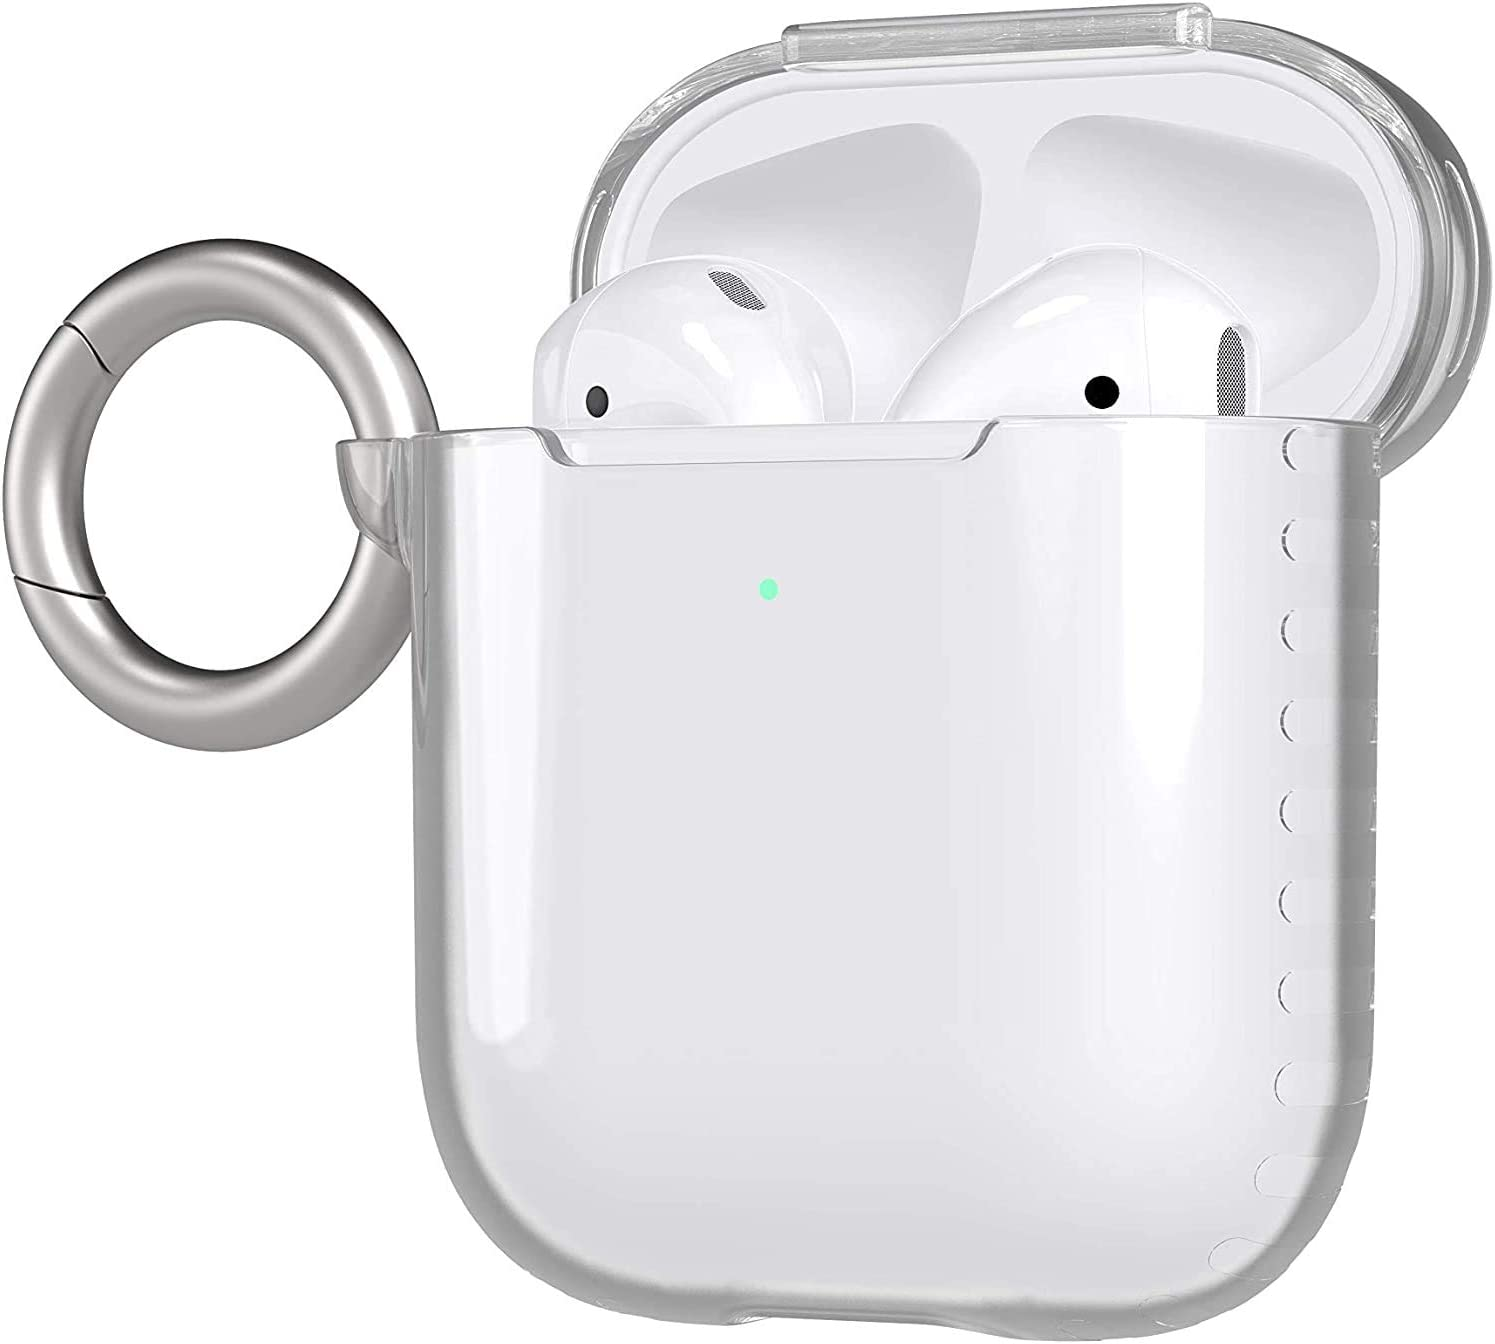 tech21 Pure Clear for Apple AirPod 1st and 2nd Gen - Plant-Based Case with Germ Fighting Antimicrobial Properties and 12 ft Drop Protection (T21-8197)